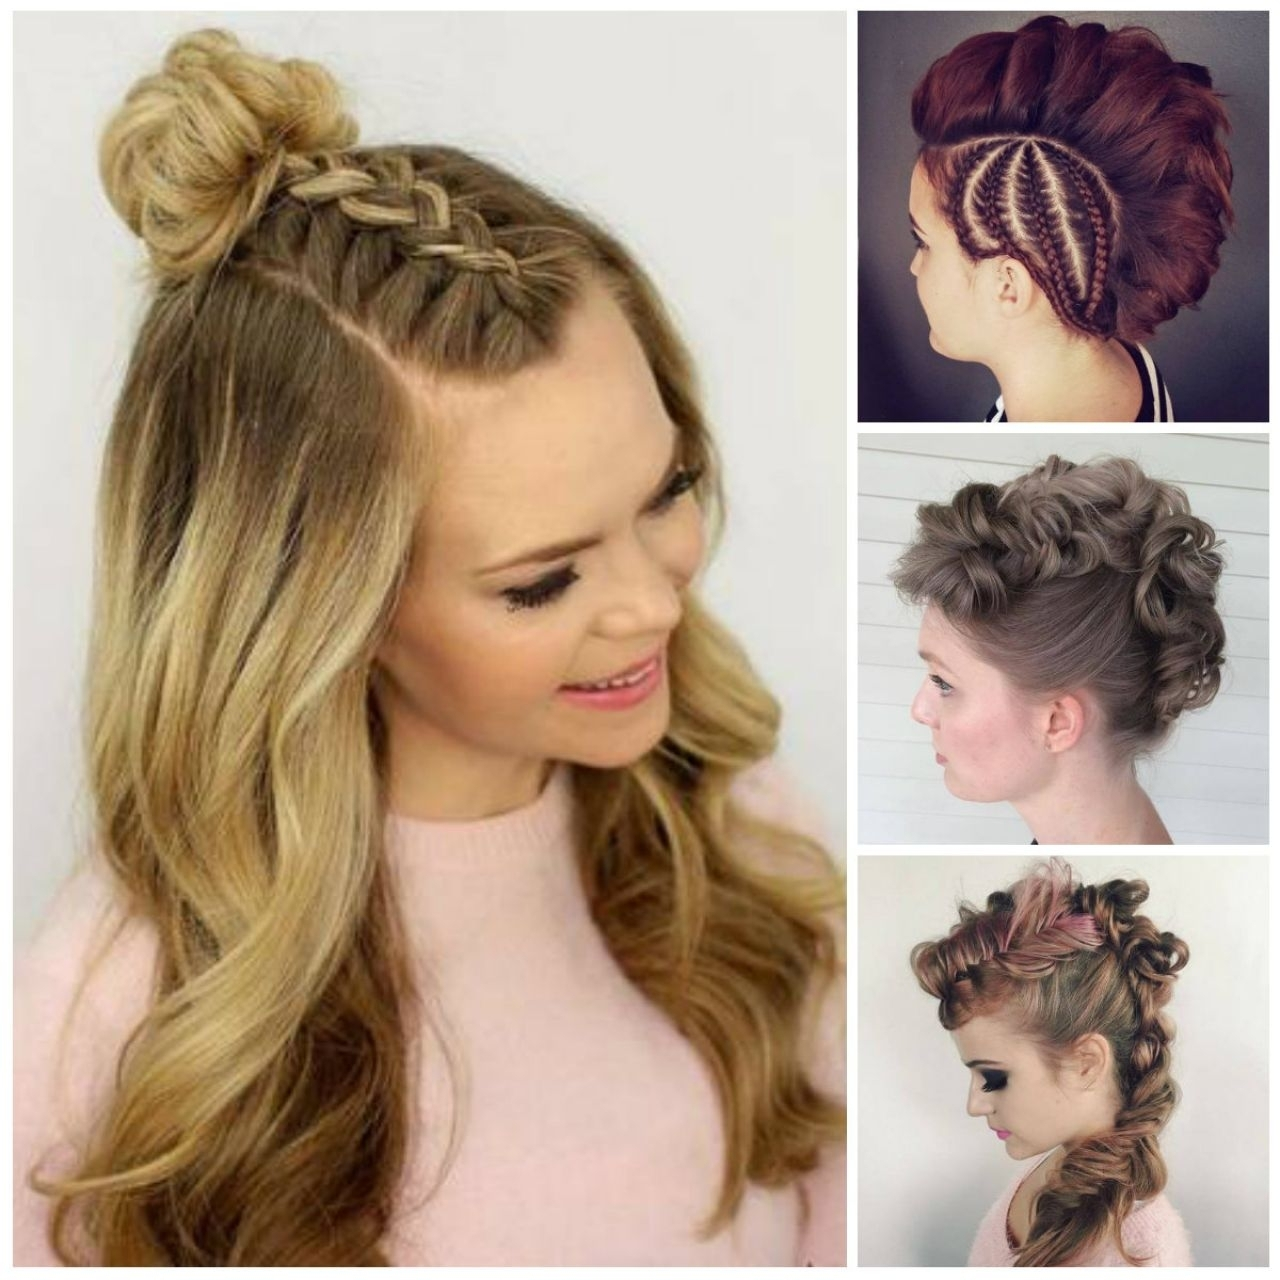 Updo Casual Hairstyles Casual Updo Hairstyles For Long Hair – Long Throughout Casual Updo Hairstyles For Long Hair (View 2 of 15)